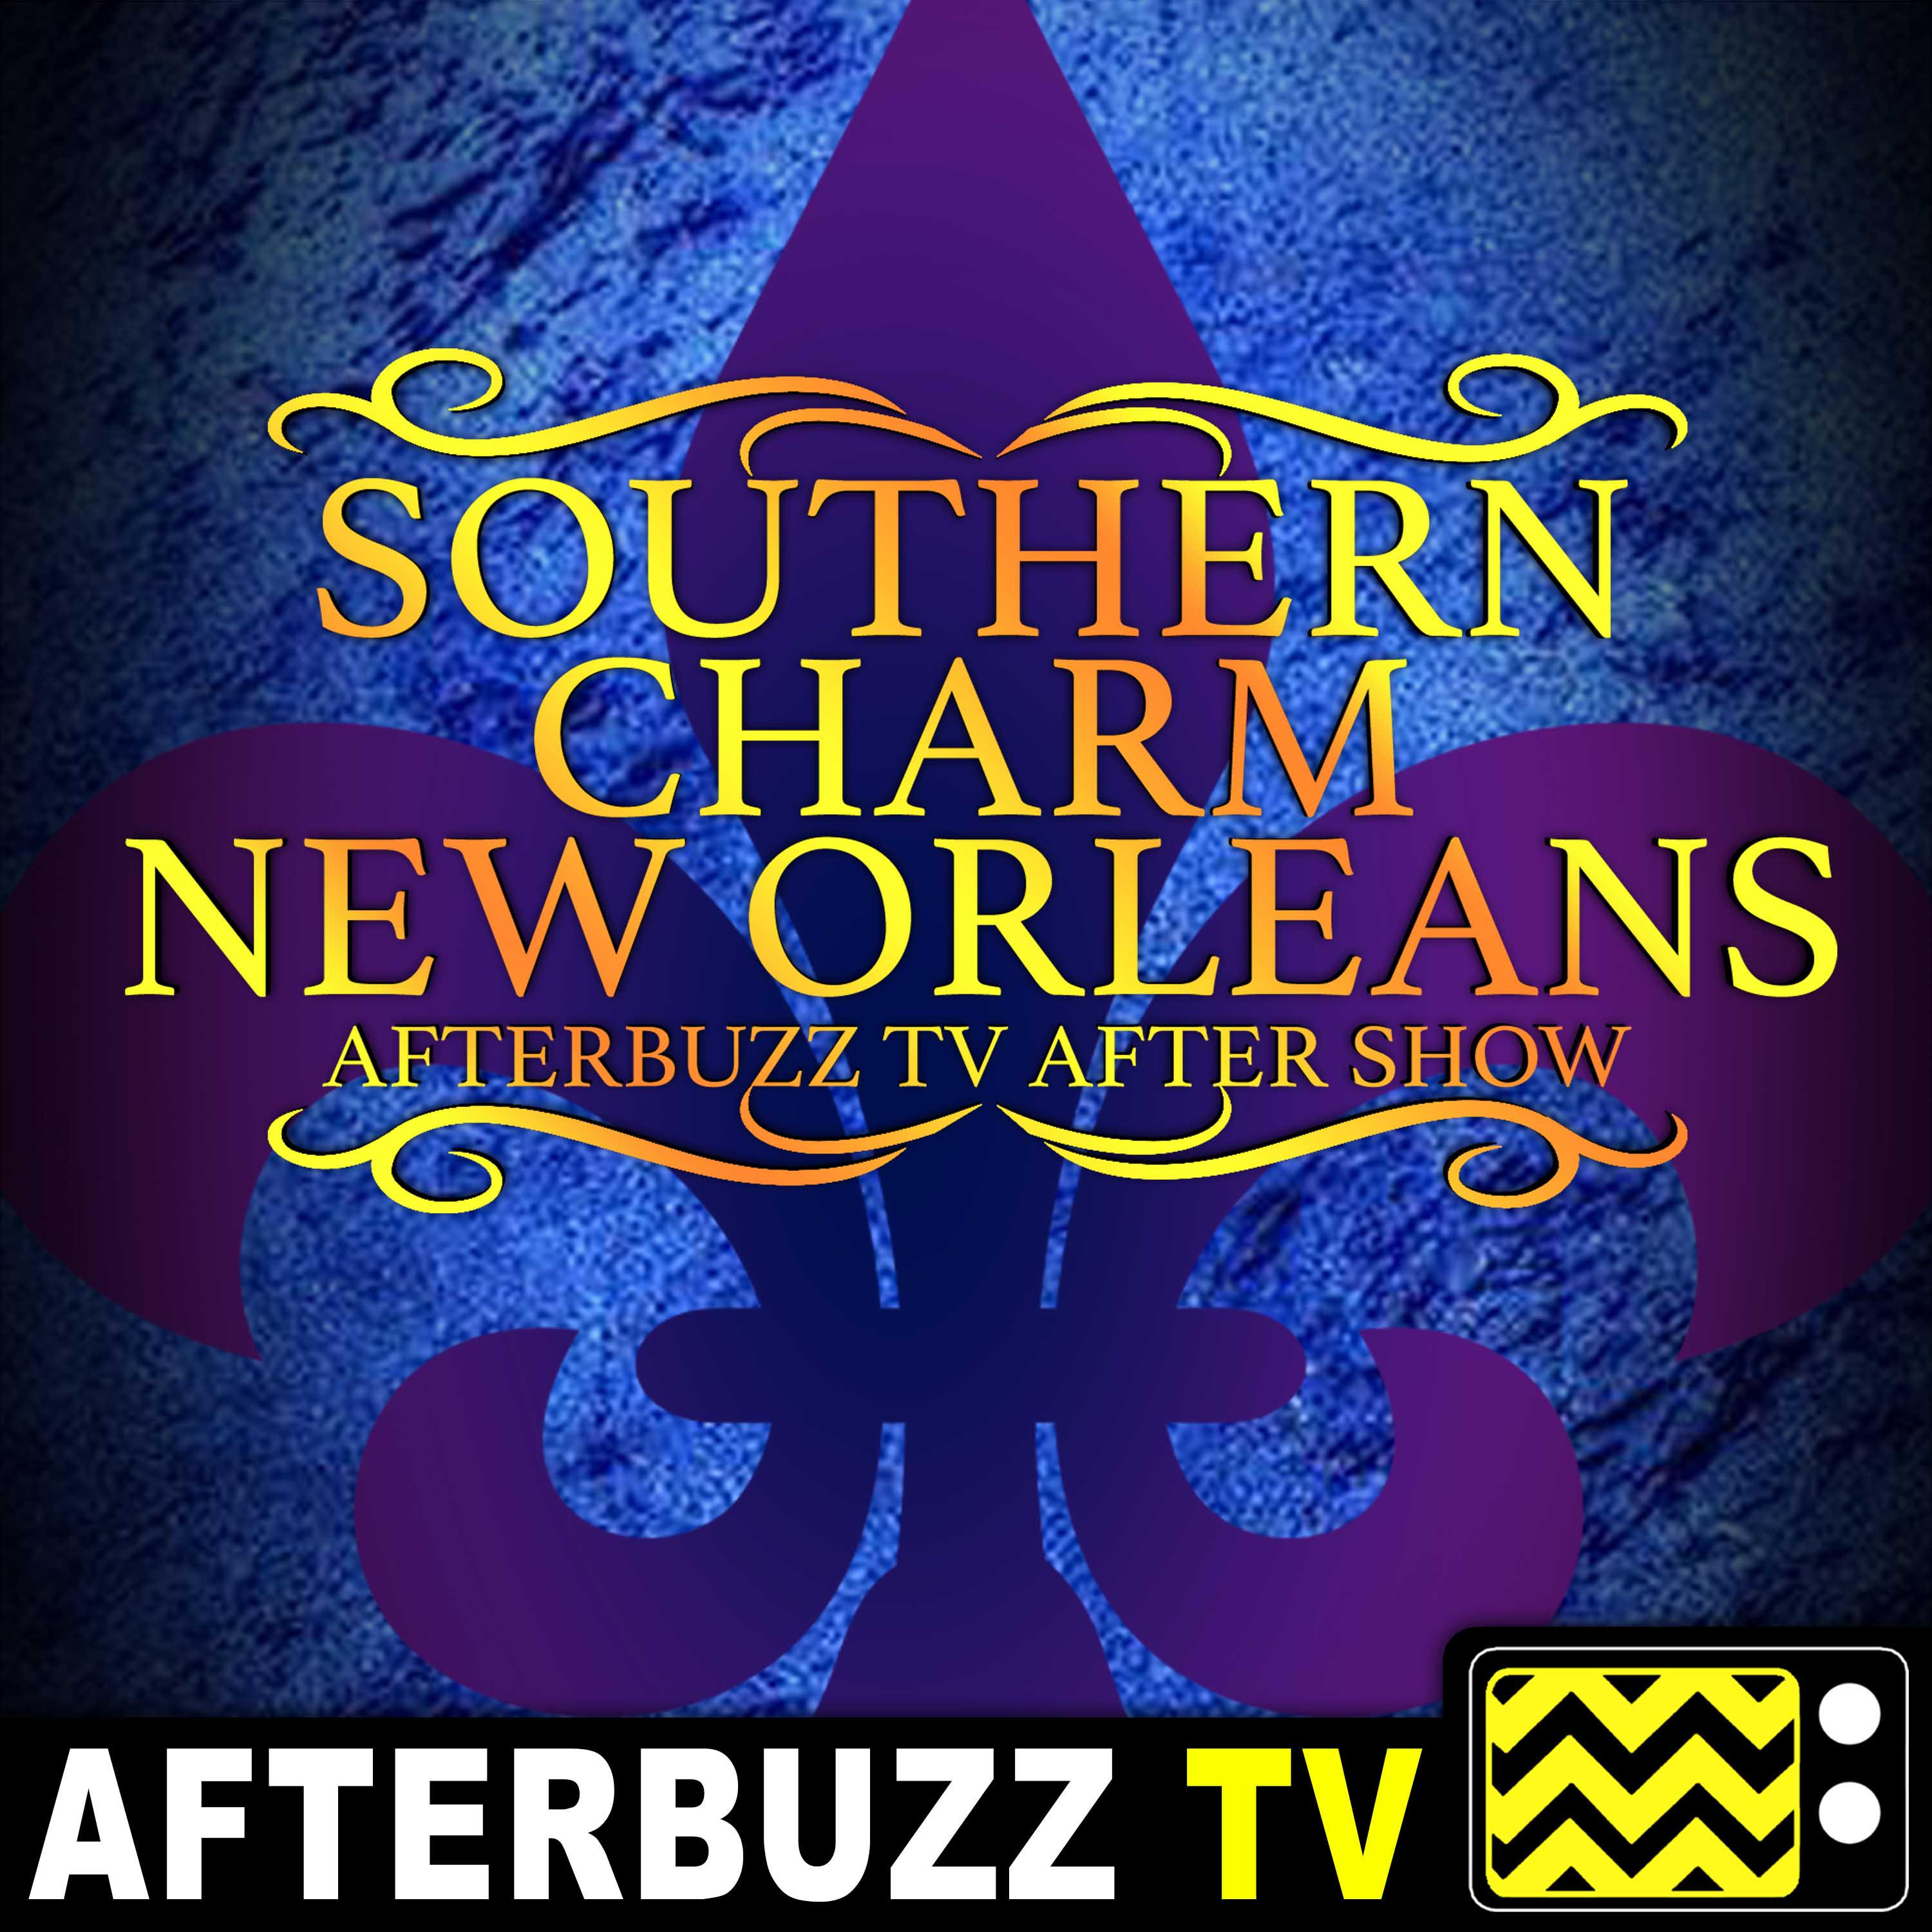 Southern Charm: New Orleans Reviews & After Show